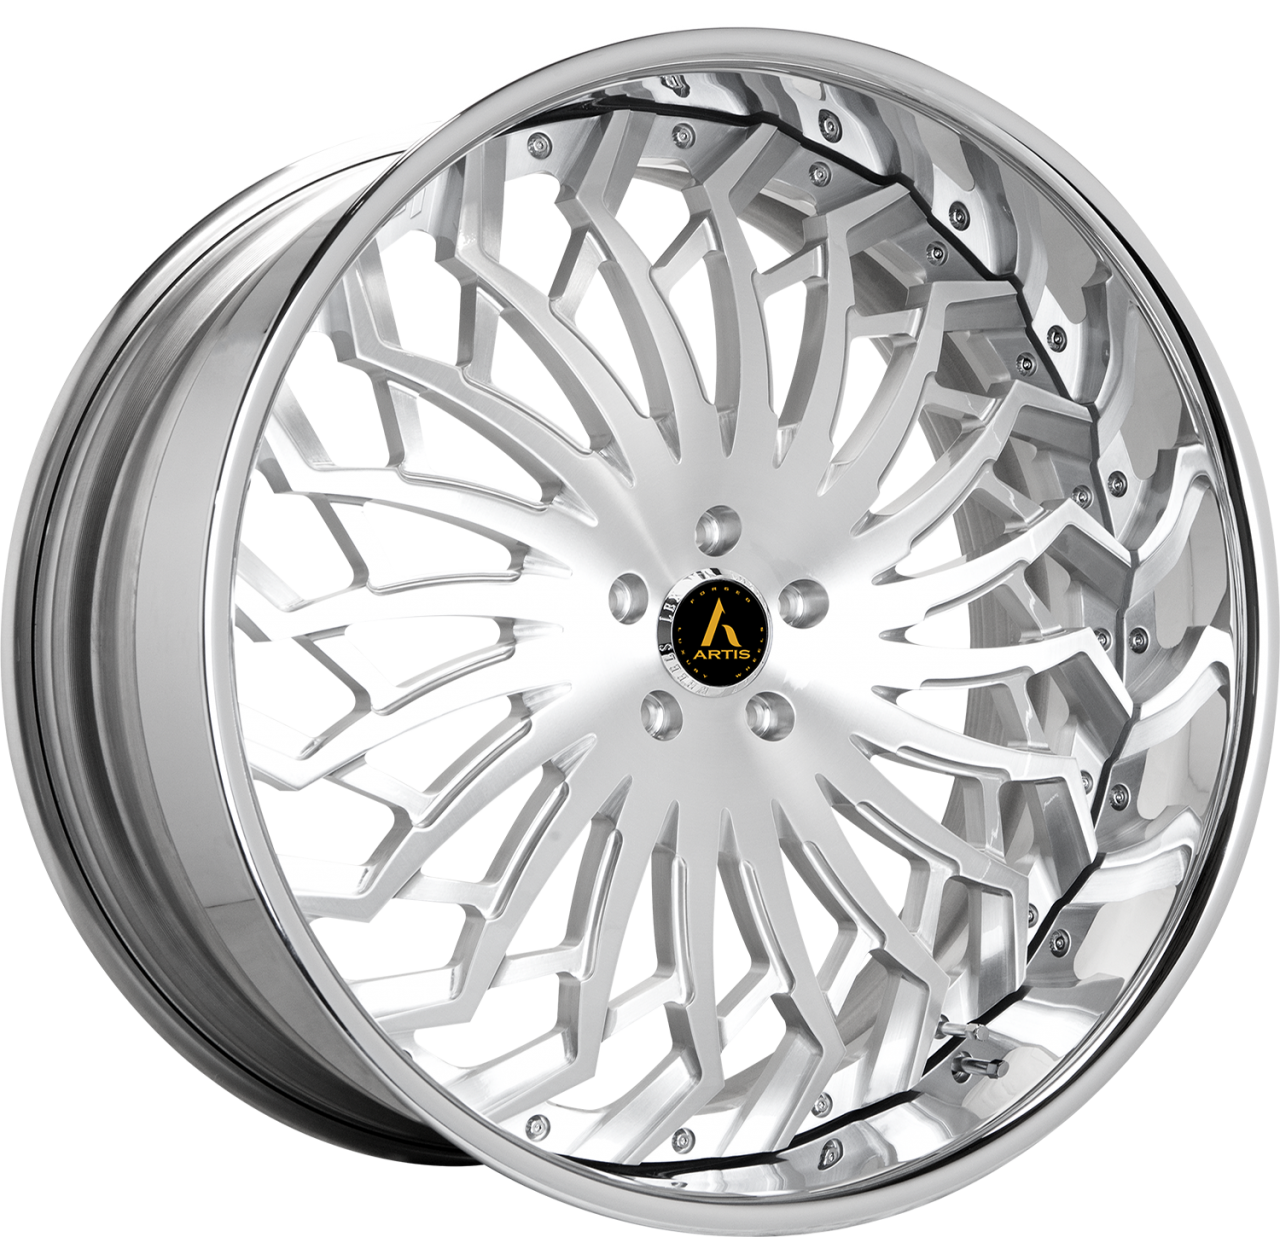 Artis Forged Spartacus wheel with Brushed finish